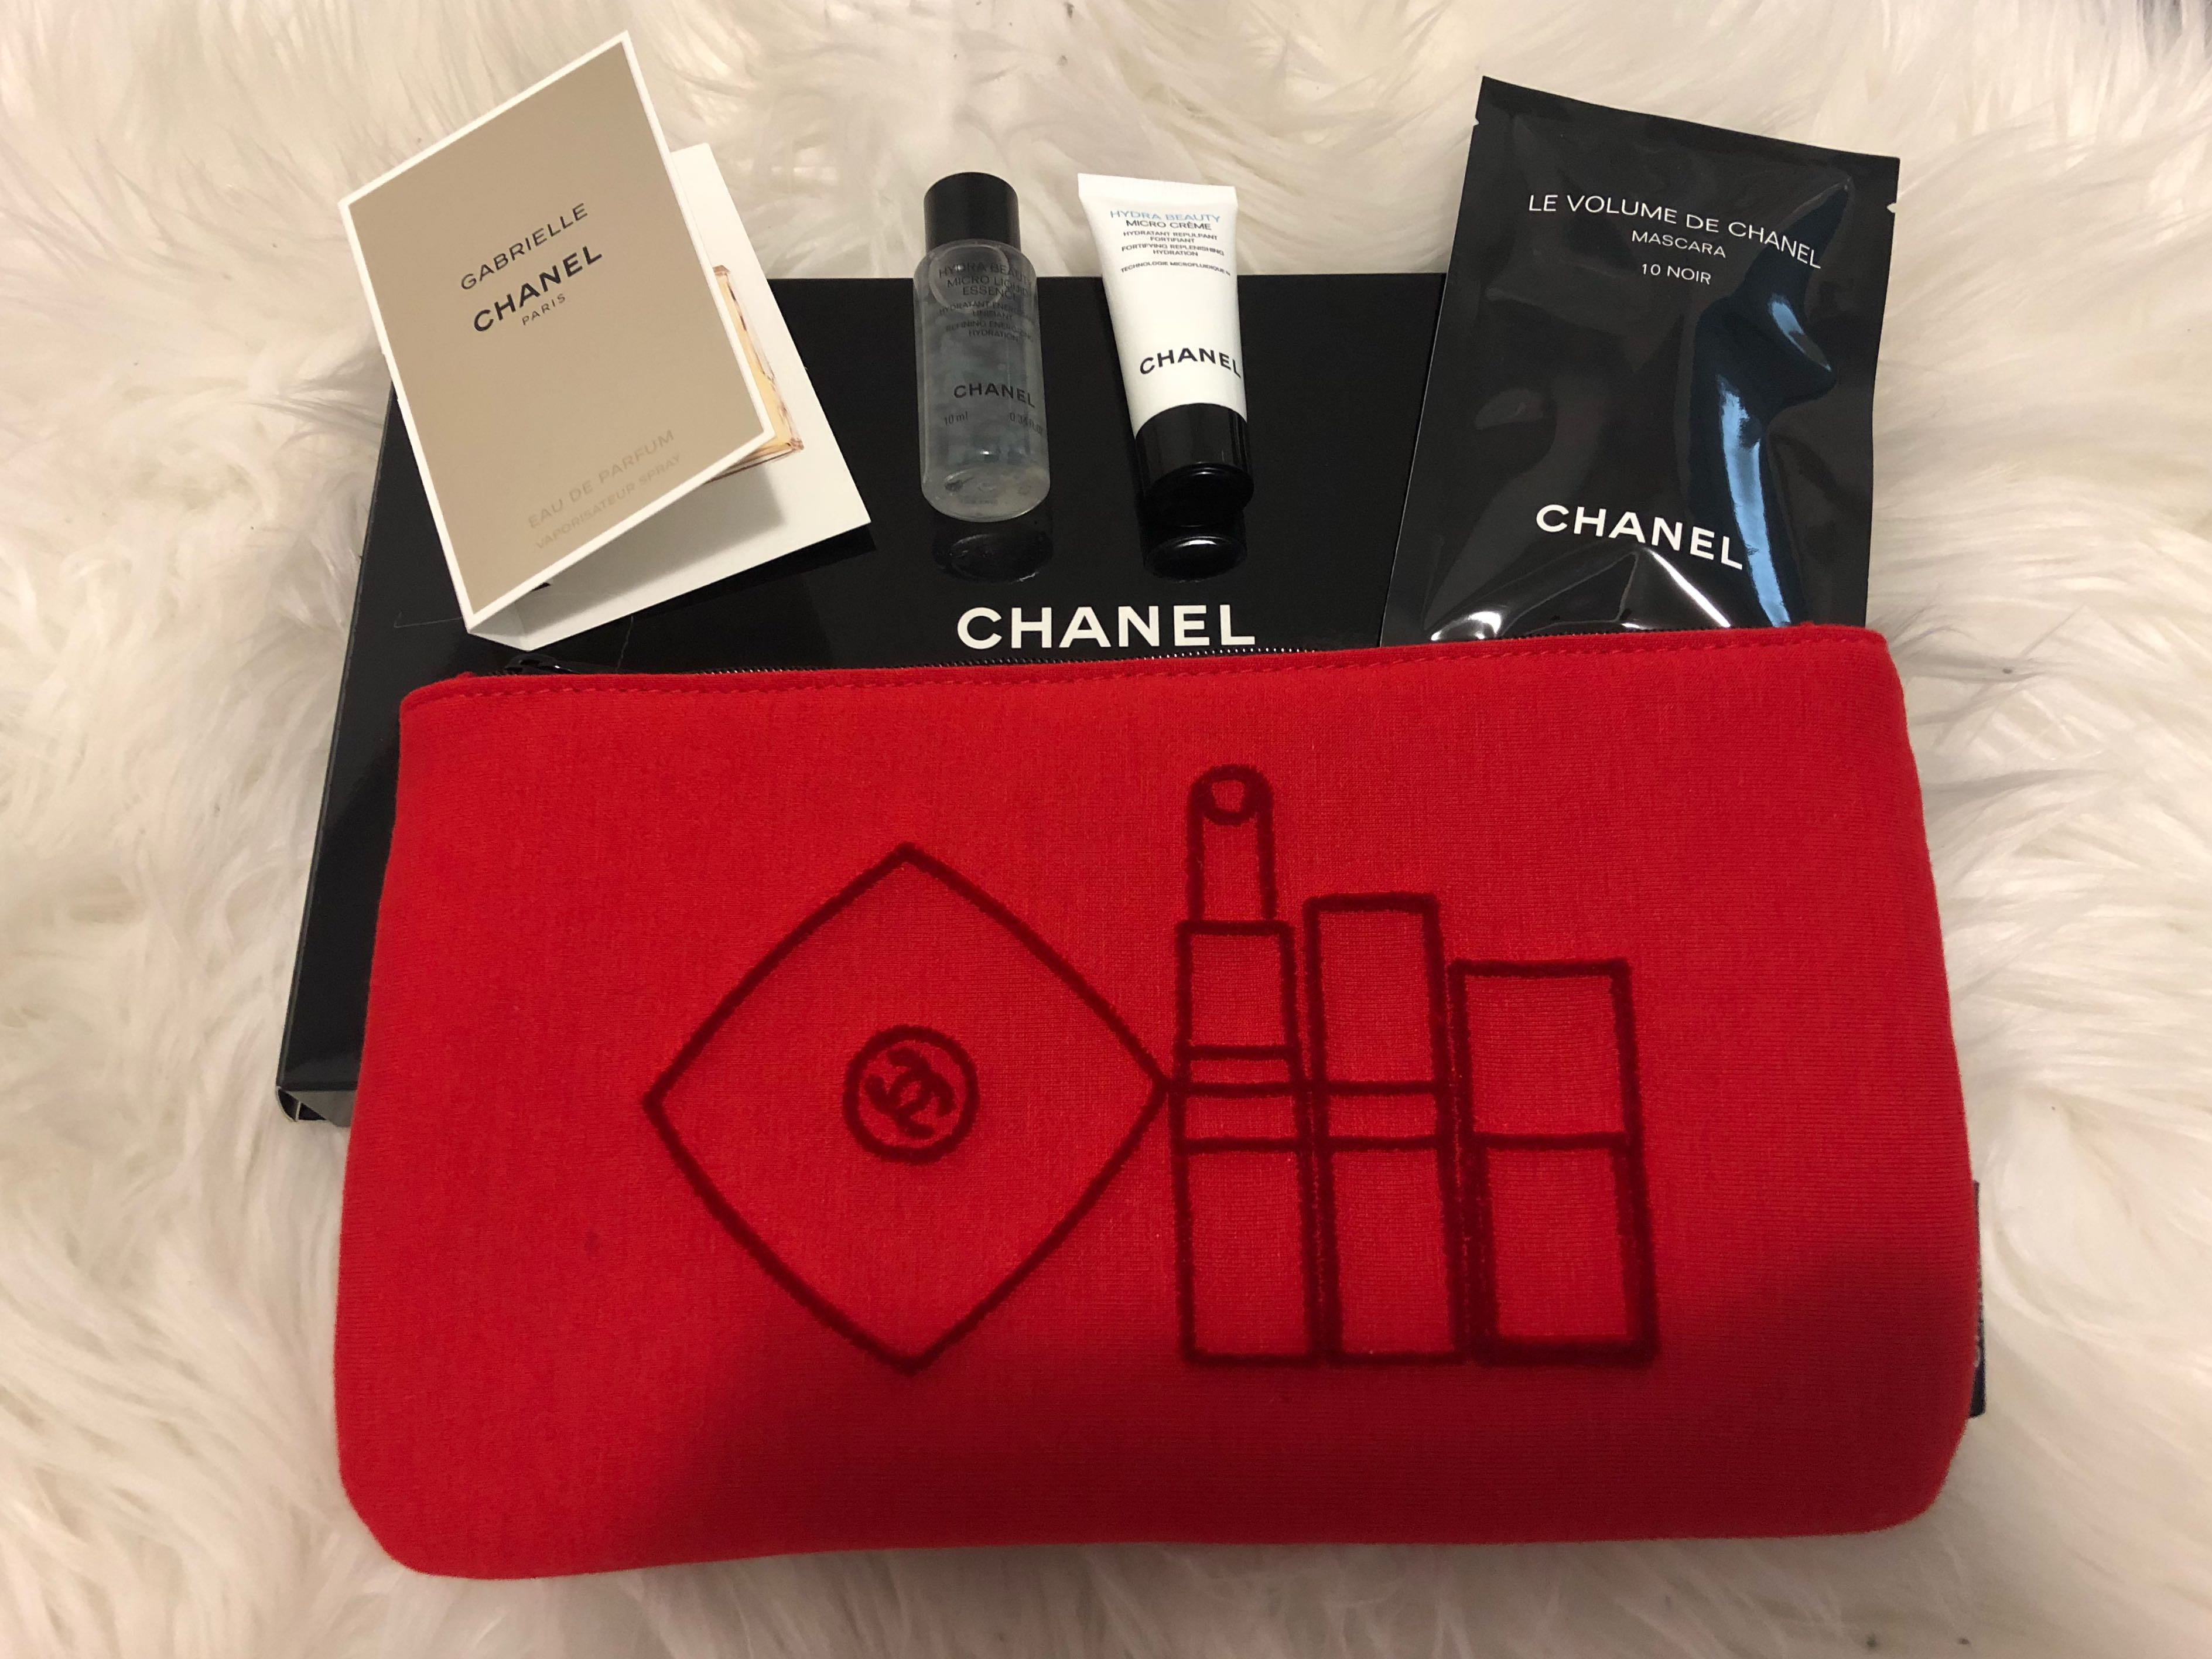 Authentic Chanel Makeup Bag & 4 products